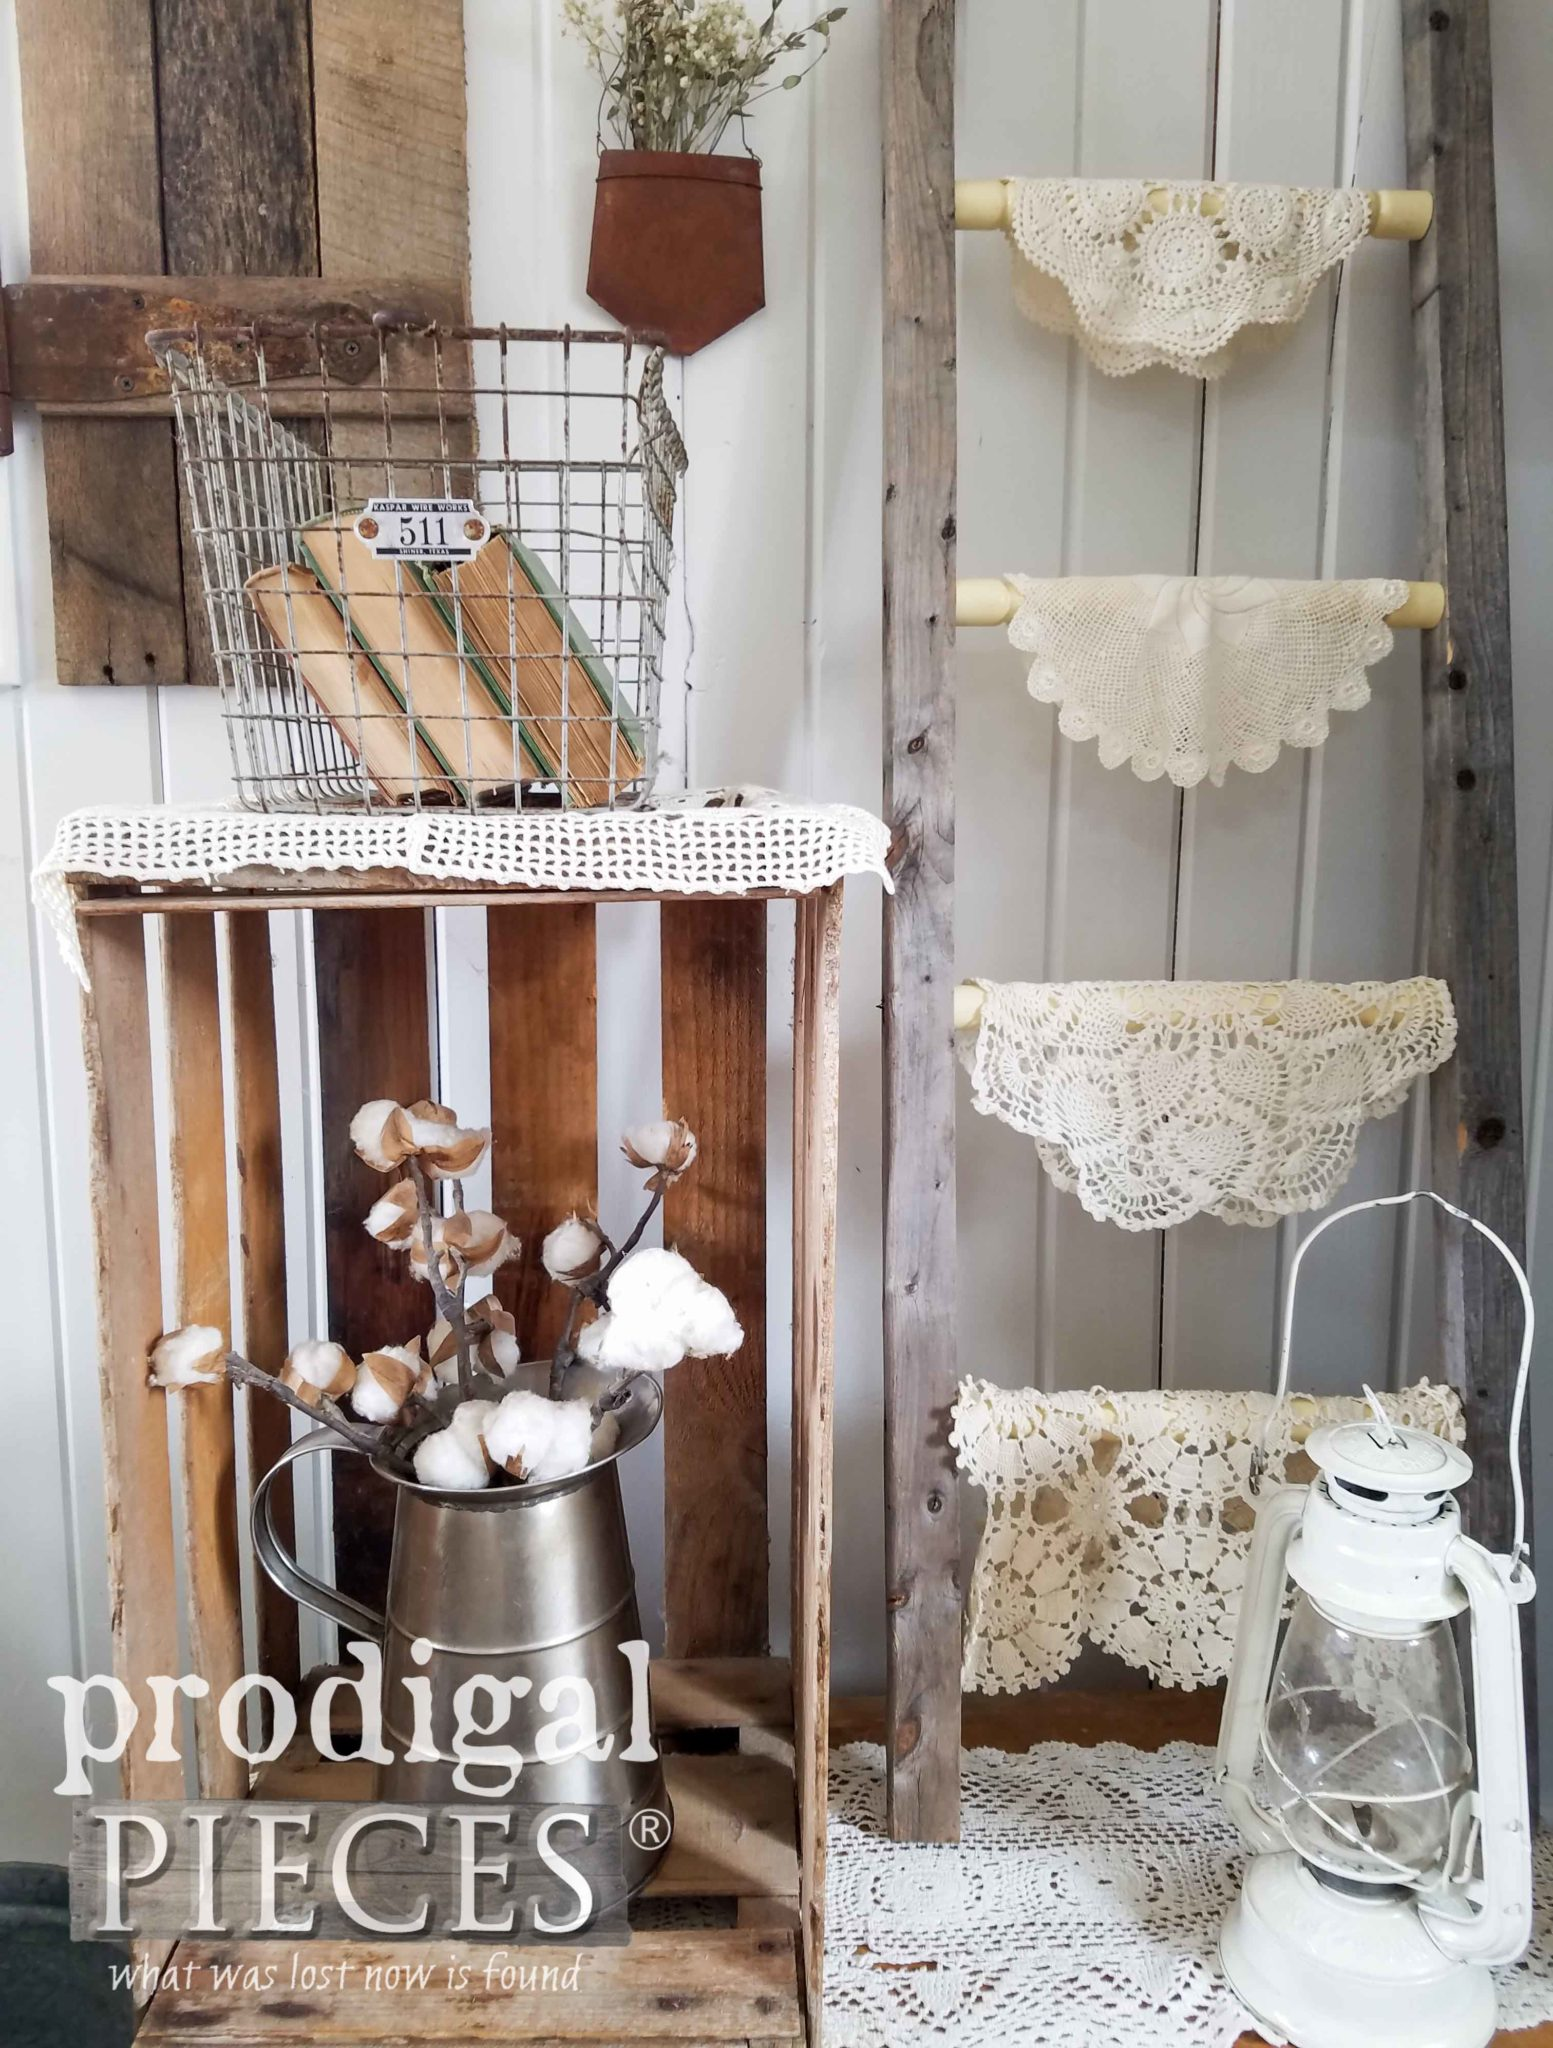 Rustic Farmhouse Decor Made from Repurposed Trash by Larissa of Prodigal Pieces | prodigalpieces.com